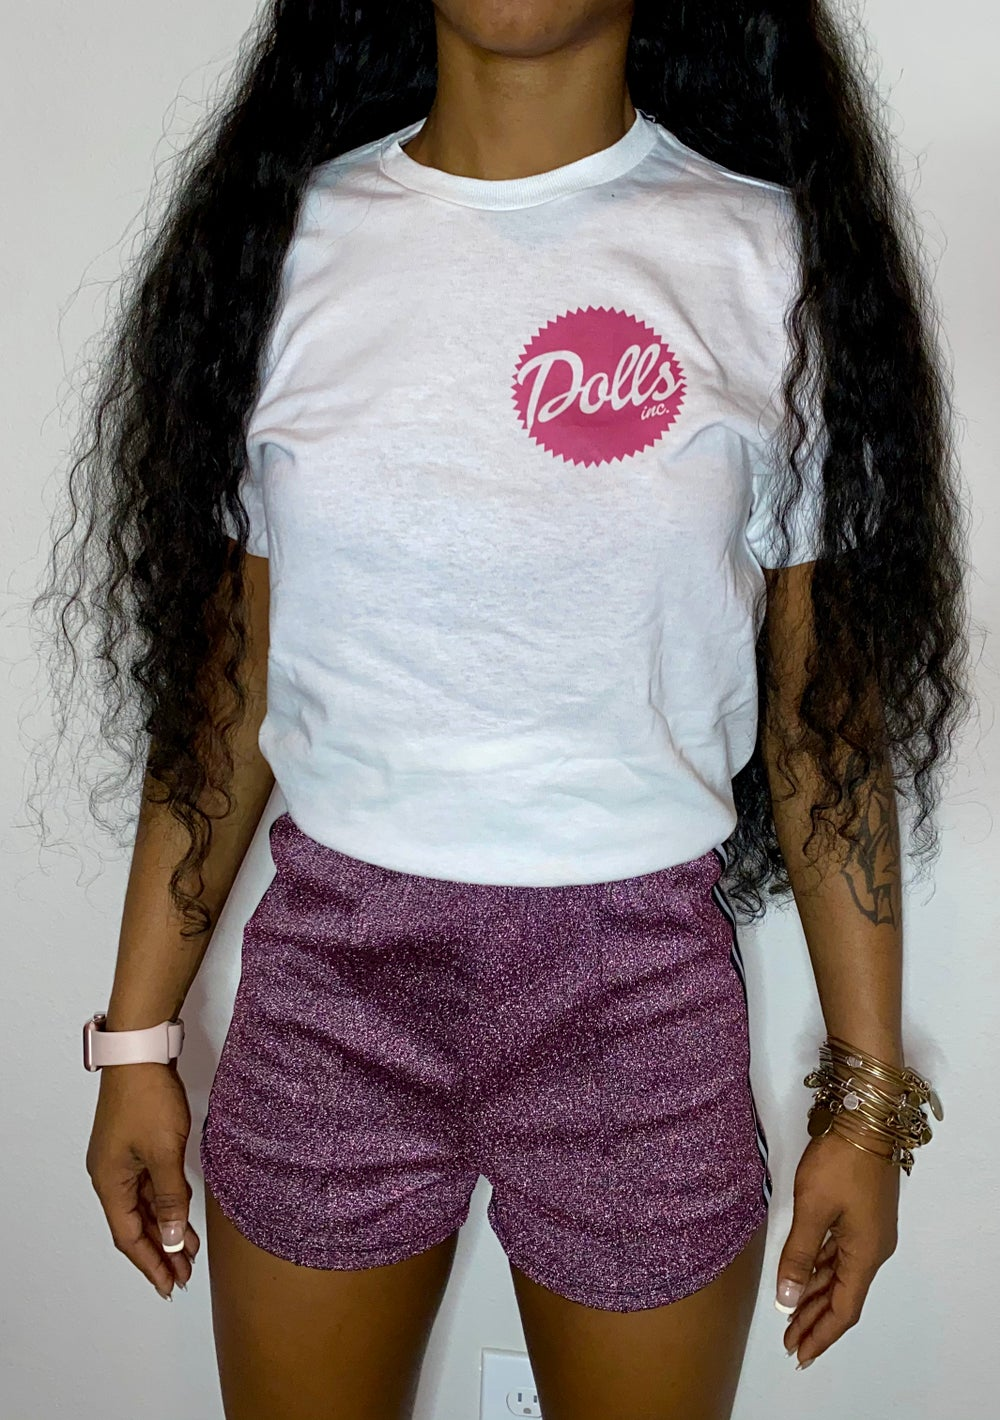 Image of Dolls, Inc. Ambassador Shirt